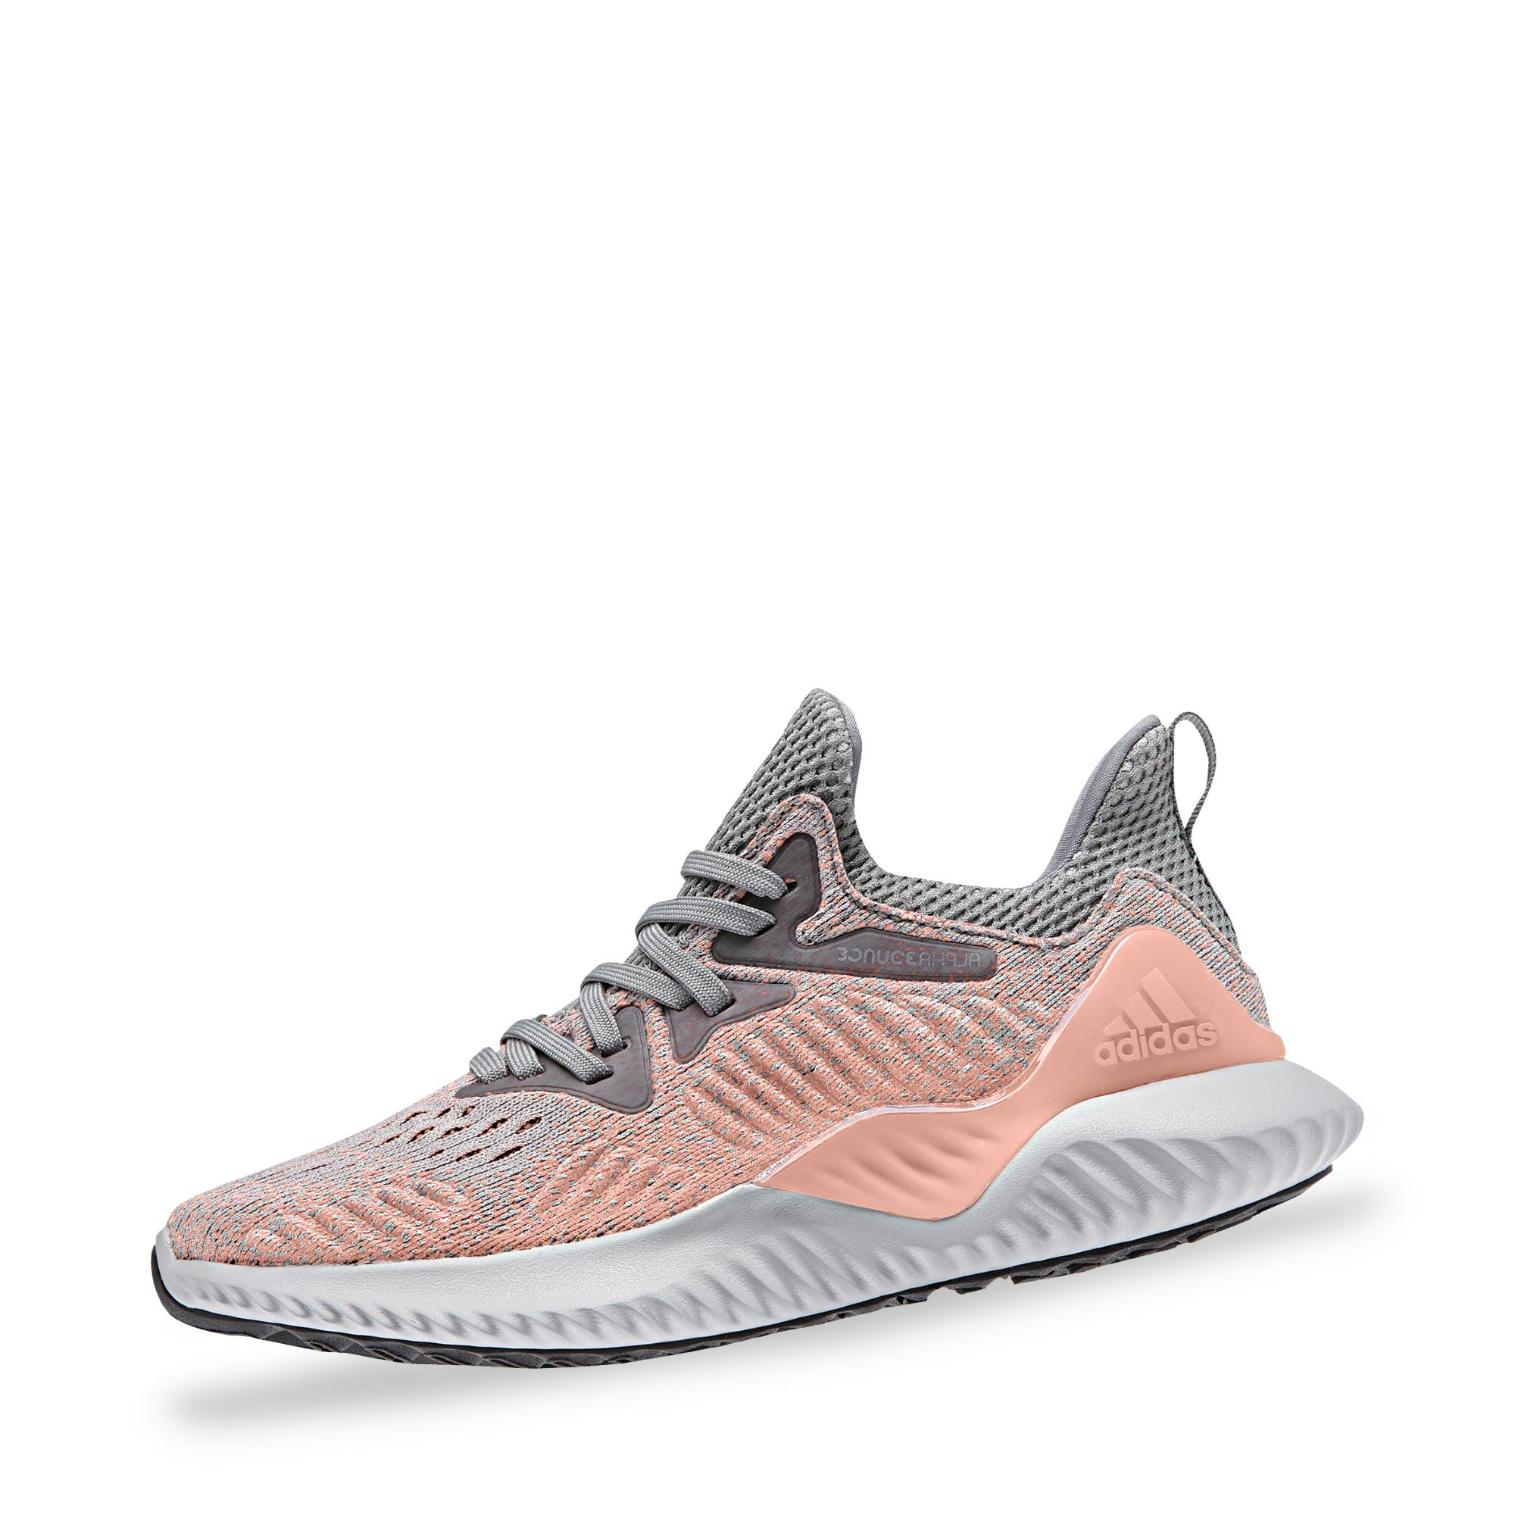 adidas alphabounce beyond Sportschuh in Farbe grauapricot